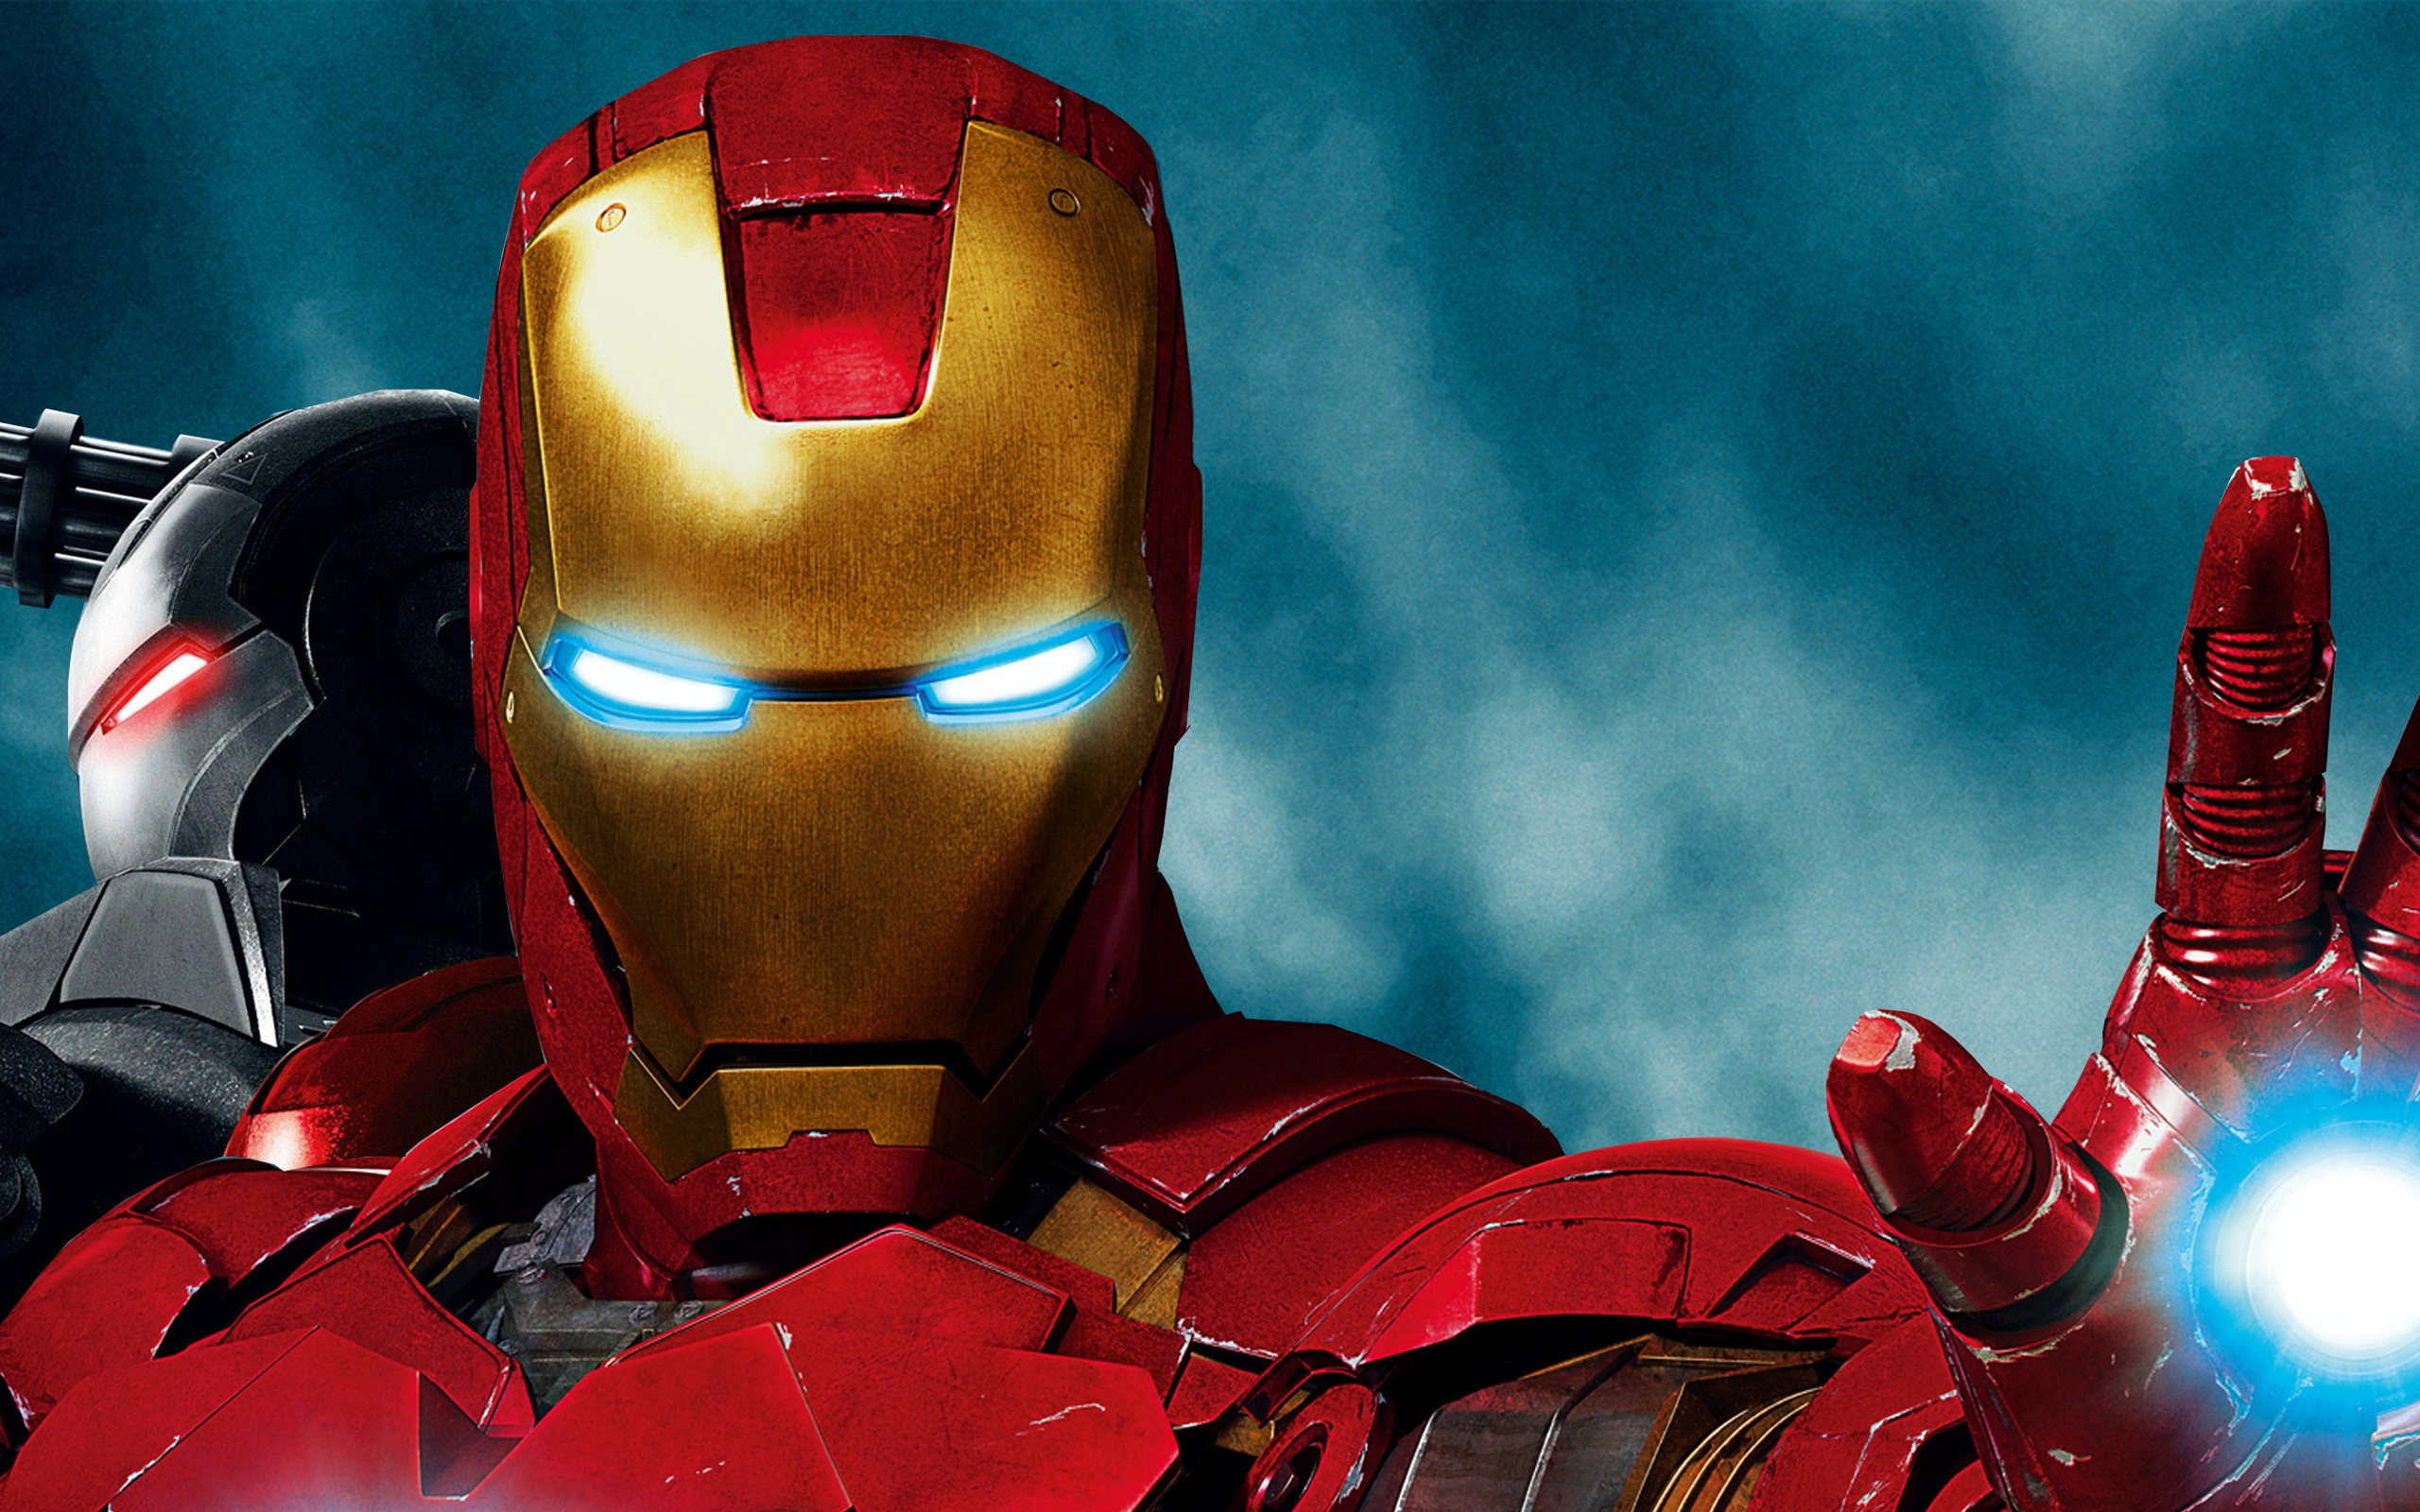 Amazing Iron Man Wallpapers in jpg format for free